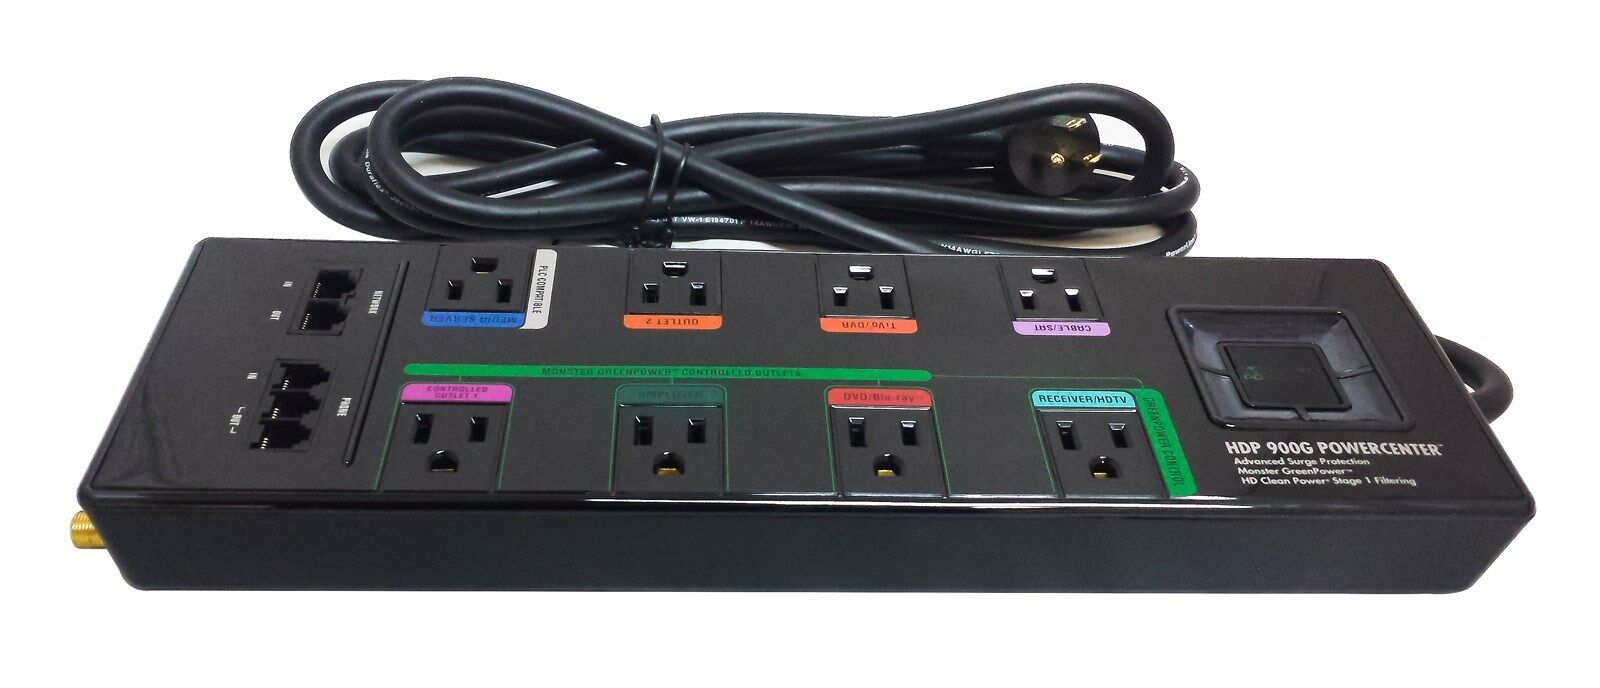 Monster Power MP HDP 900G Advanced Surge Protector - 8 Outlets ...